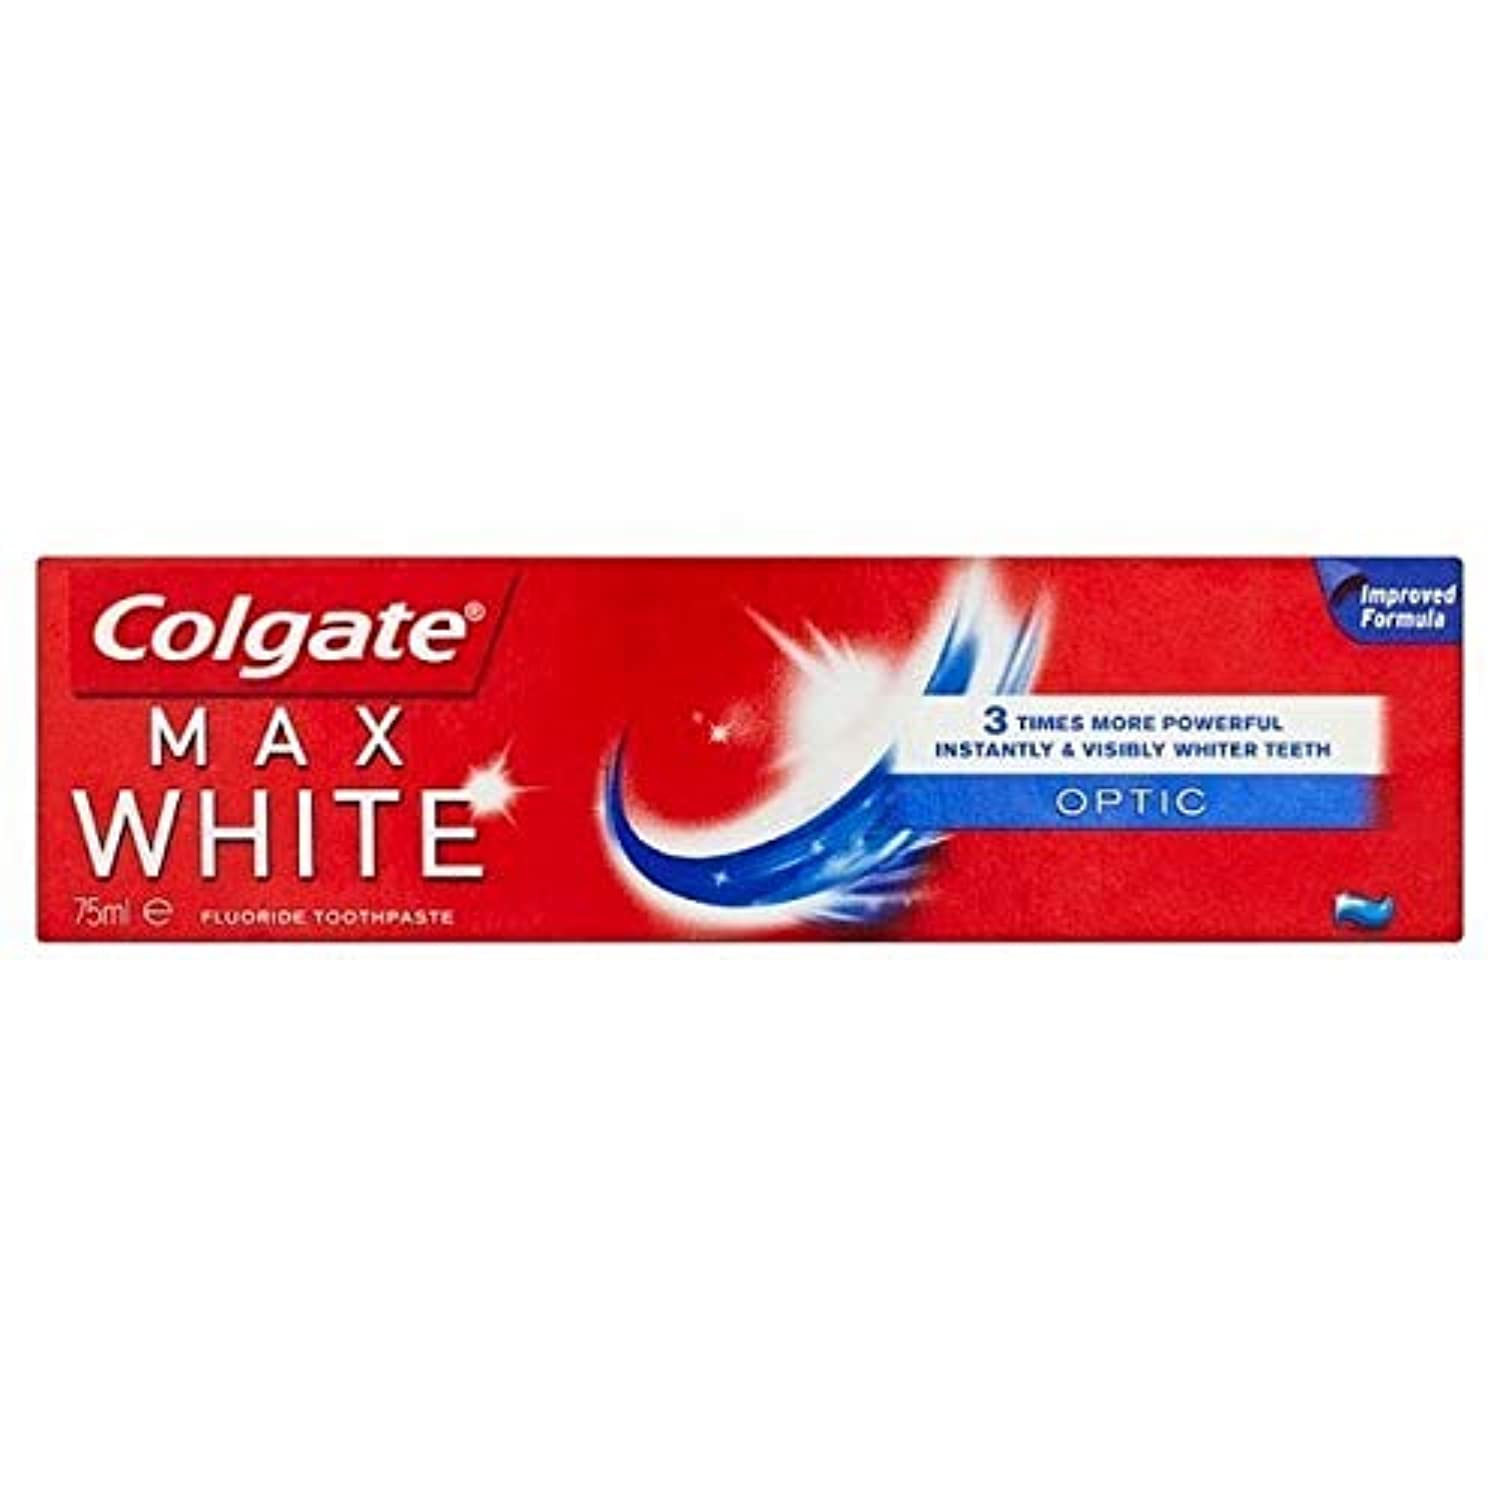 [Colgate ] コルゲート最大白い光ホワイトニング歯磨き粉75ミリリットル - Colgate Max White Optic Whitening Toothpaste 75ml [並行輸入品]